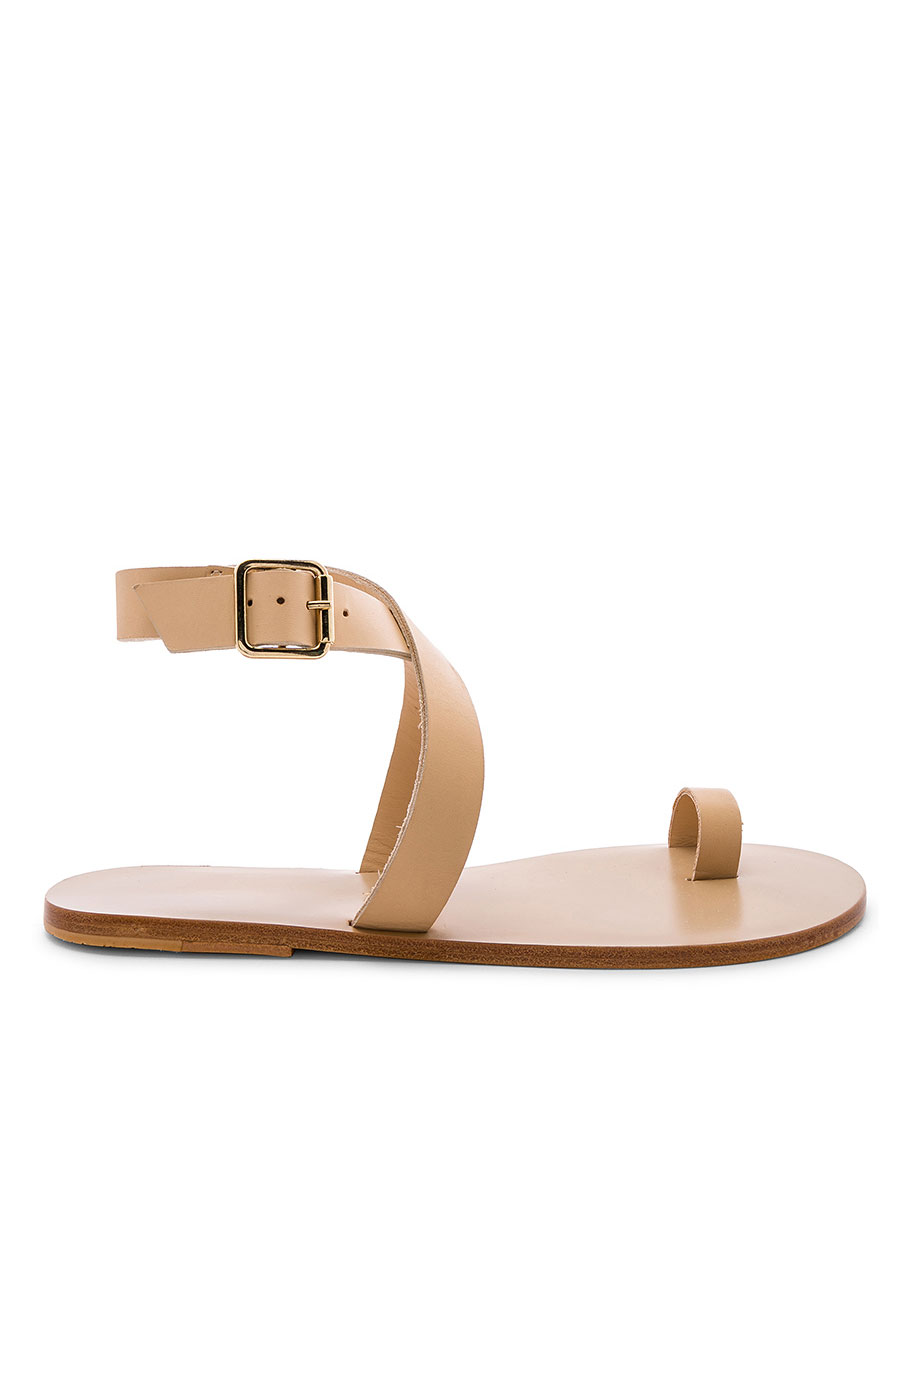 TKees Sandals     $165